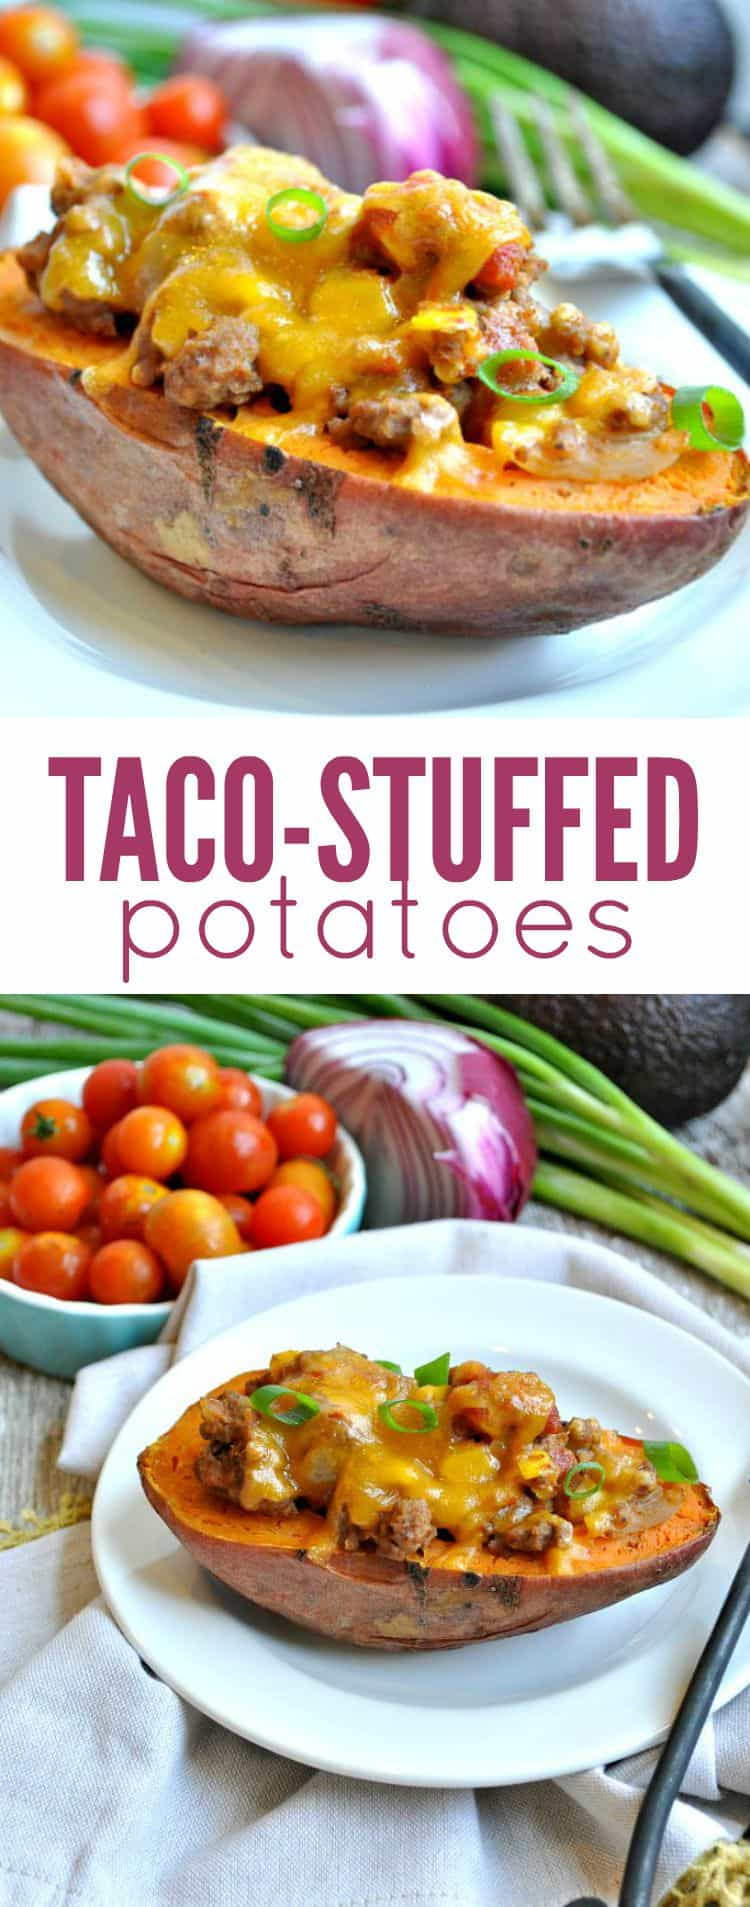 ... Taco Stuffed Potatoes! Whether you use sweet potatoes or russet